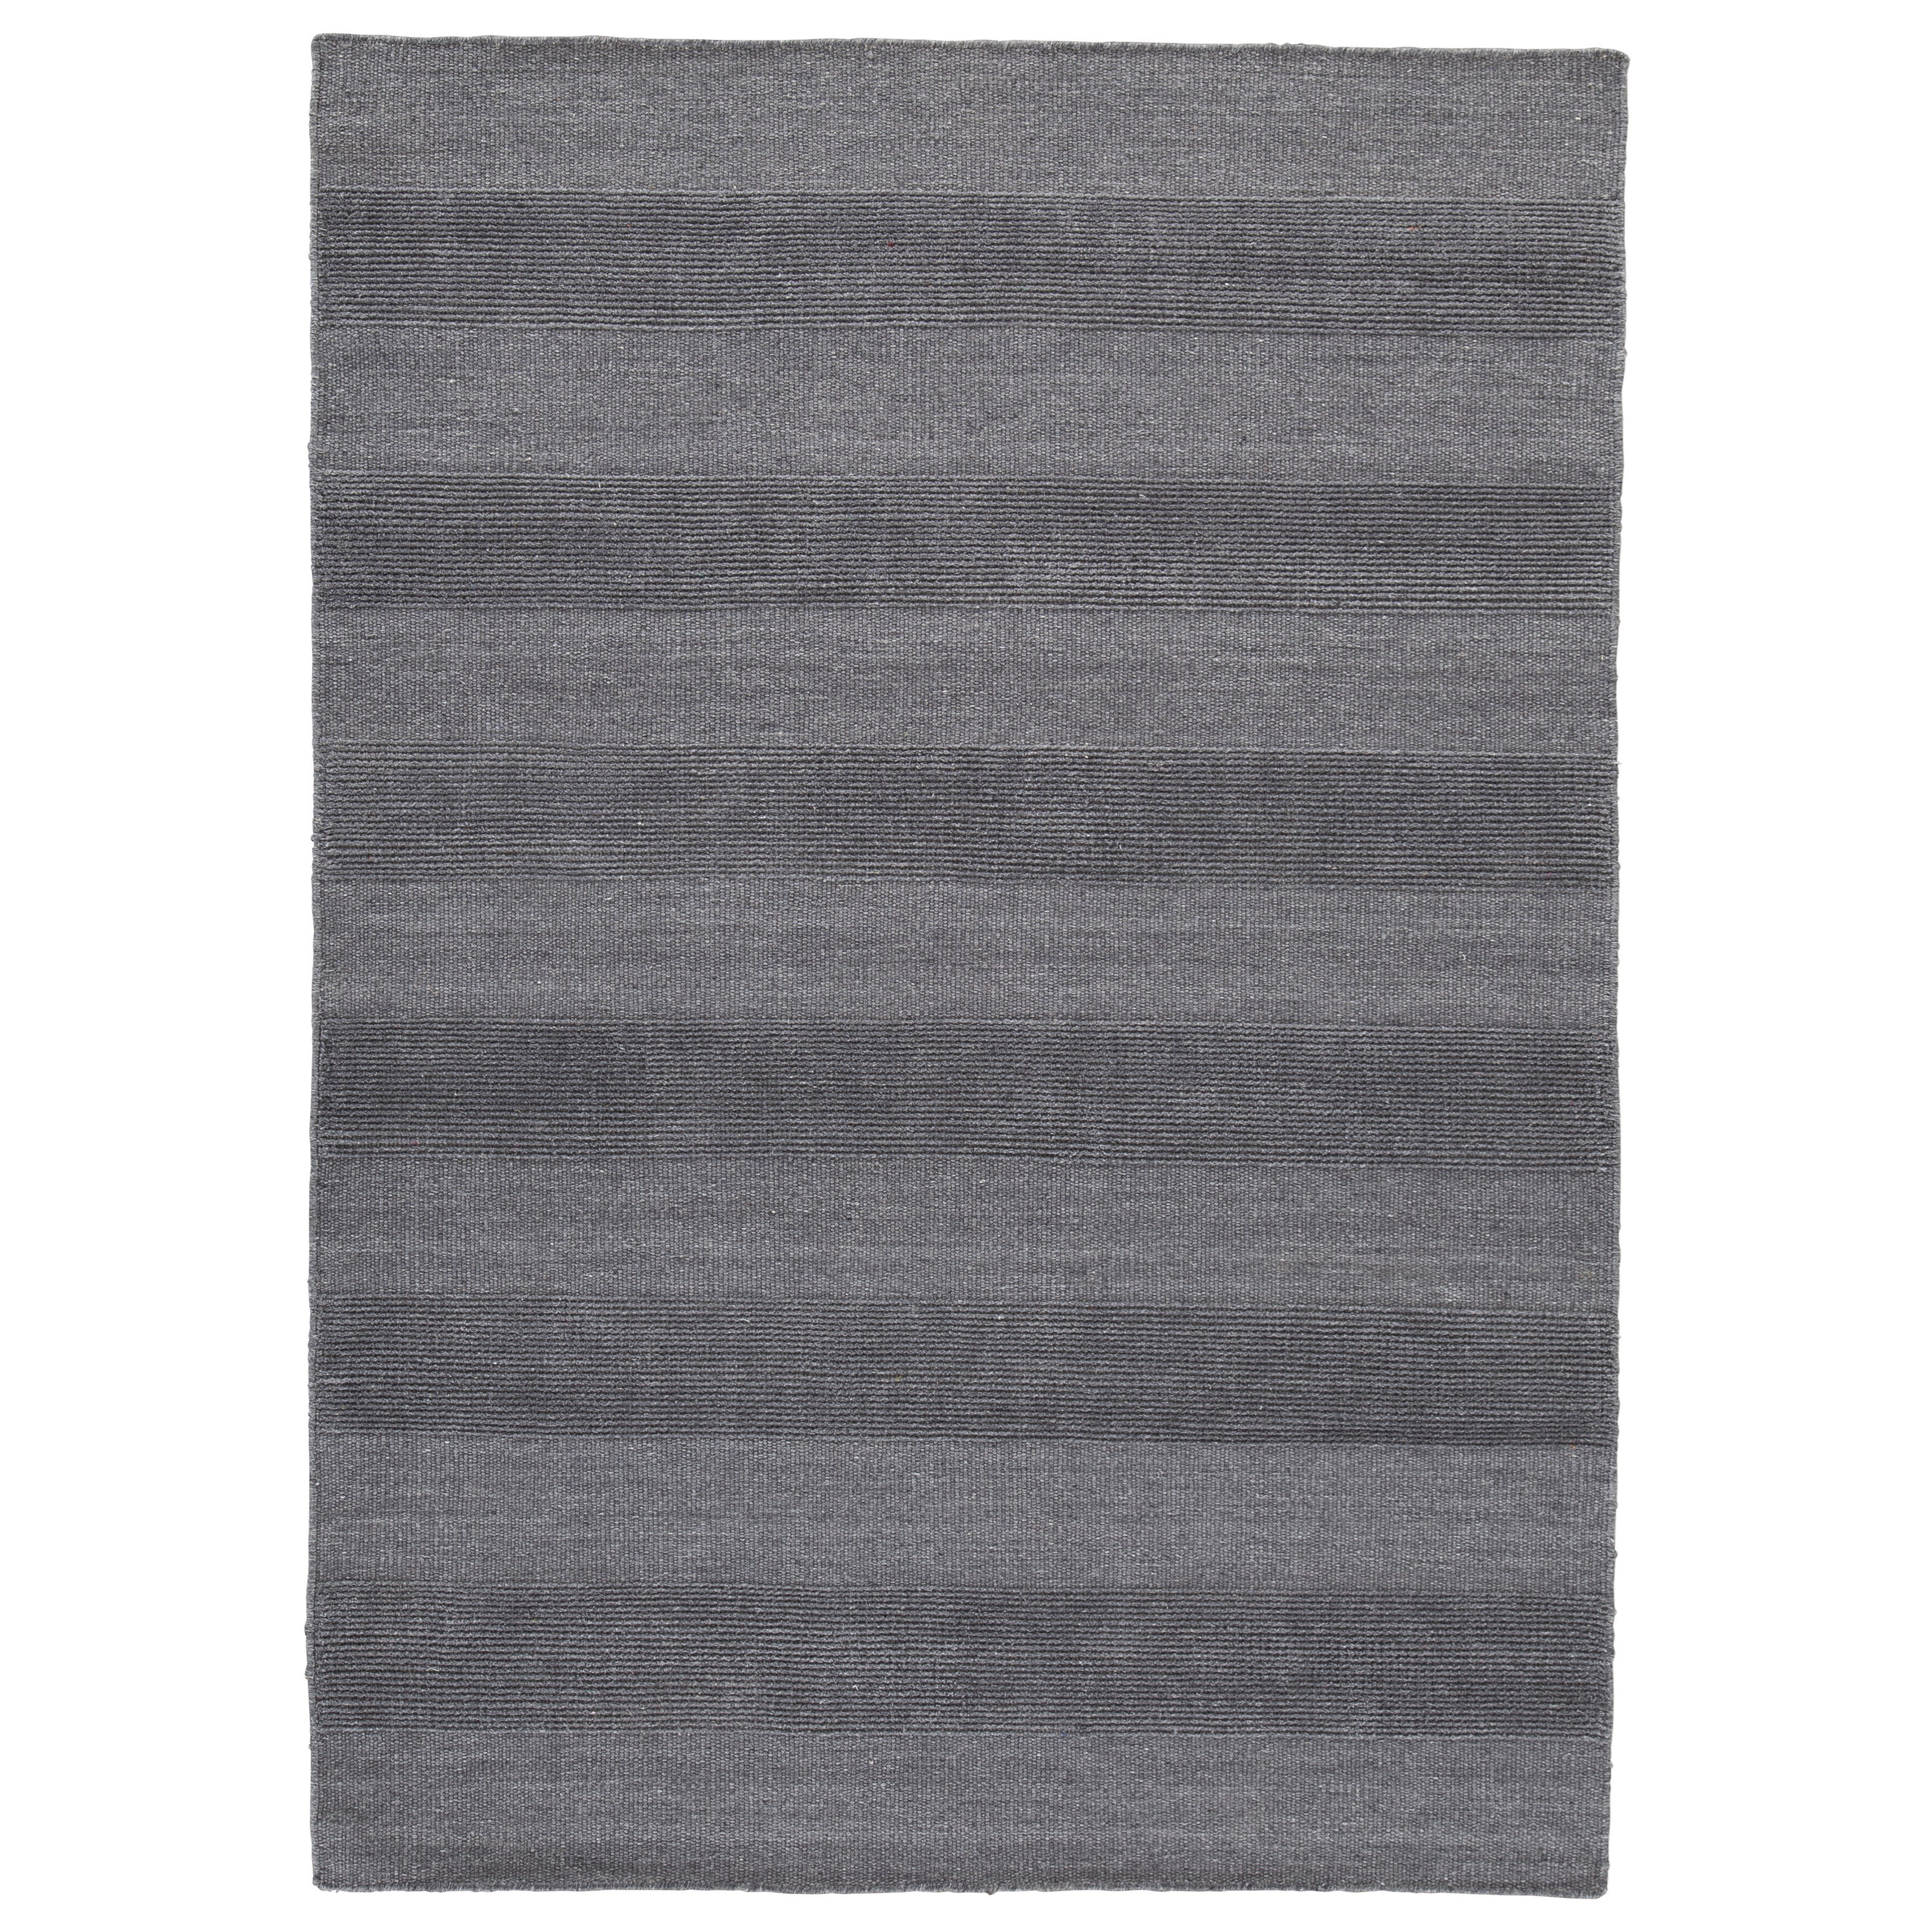 Contemporary Area Rugs Kaelynn Charcoal Medium Rug by Signature Design by Ashley at Northeast Factory Direct